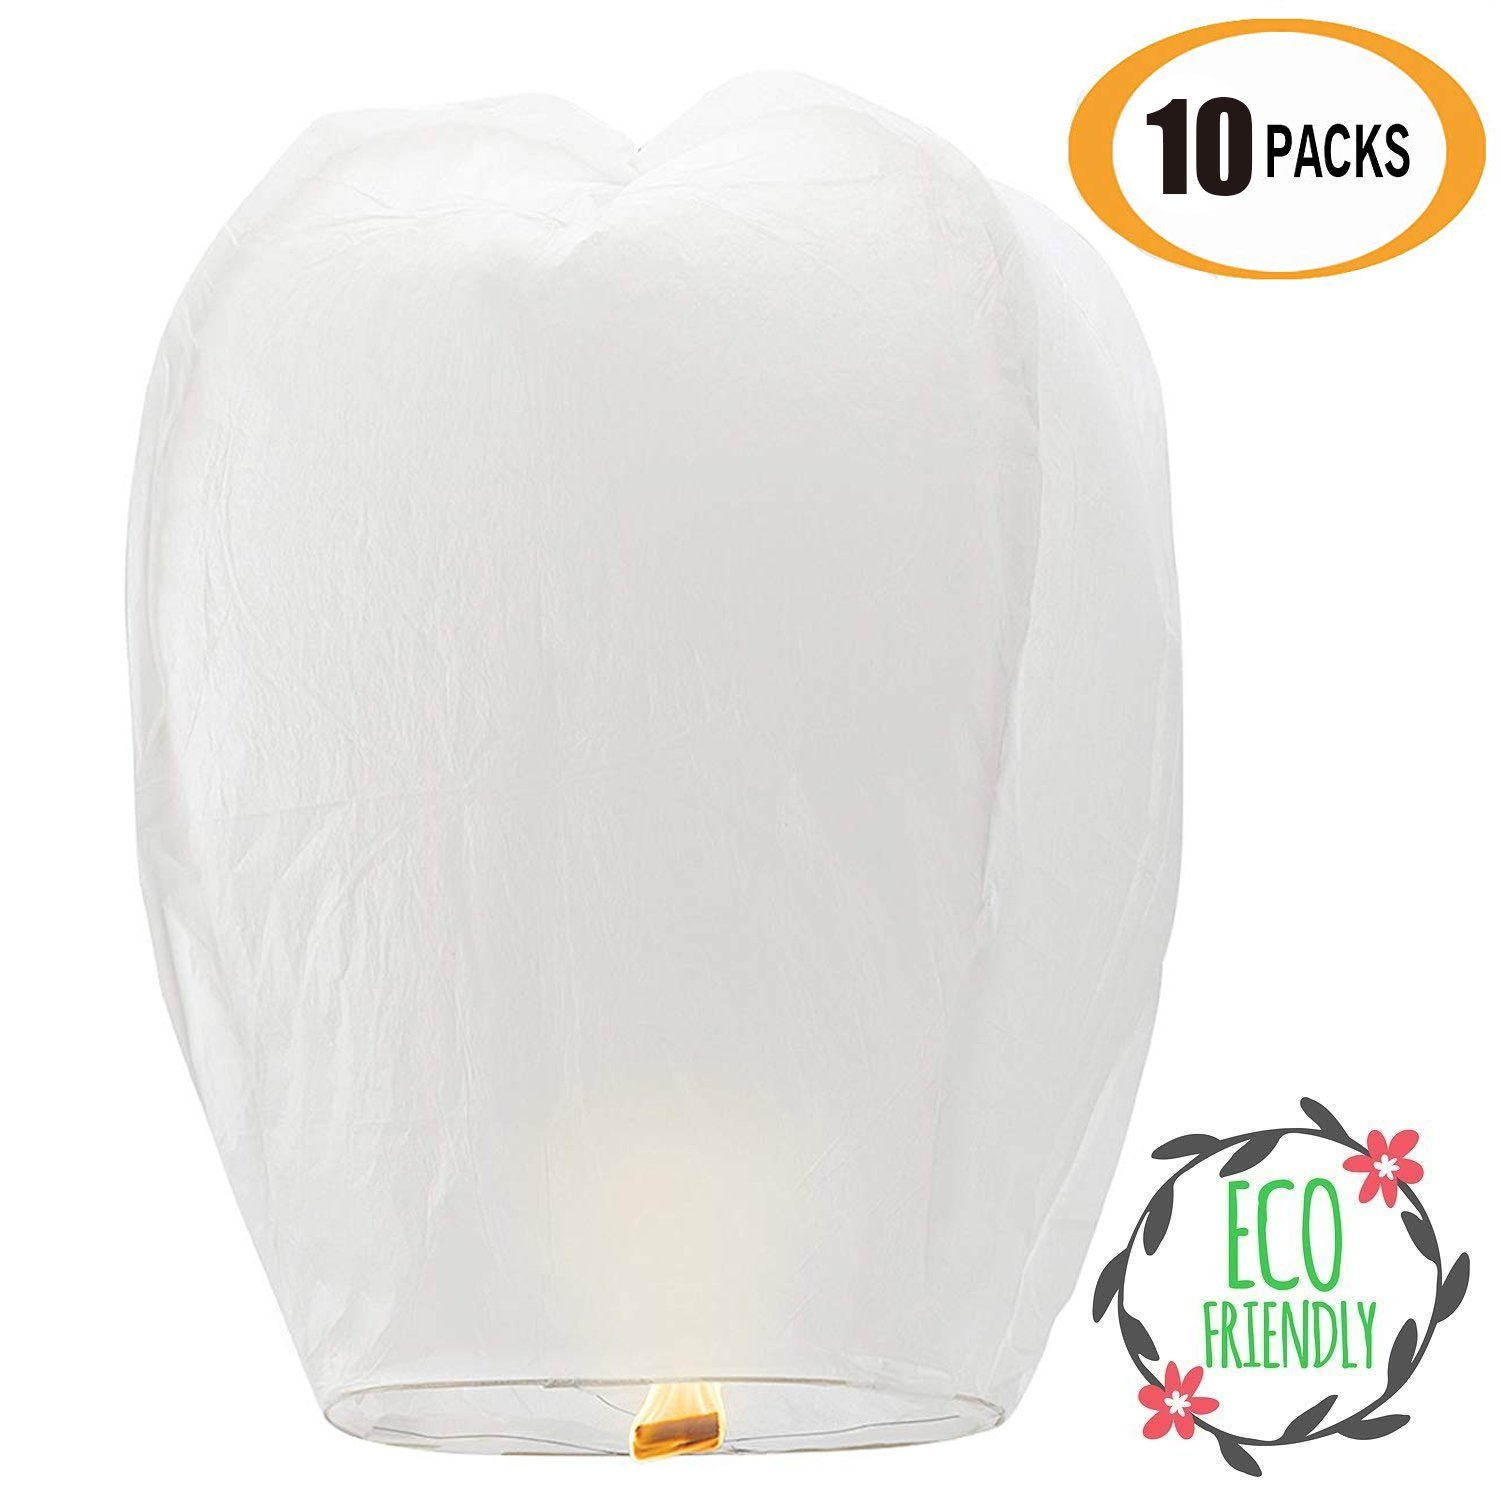 Chinese Lanterns & Sky Lanterns ECO Friendly - 100% Biodegradable - Beautiful Lantern for White for Weddings, Birthdays, Memorials and Much More (10 Pack) by Caryo